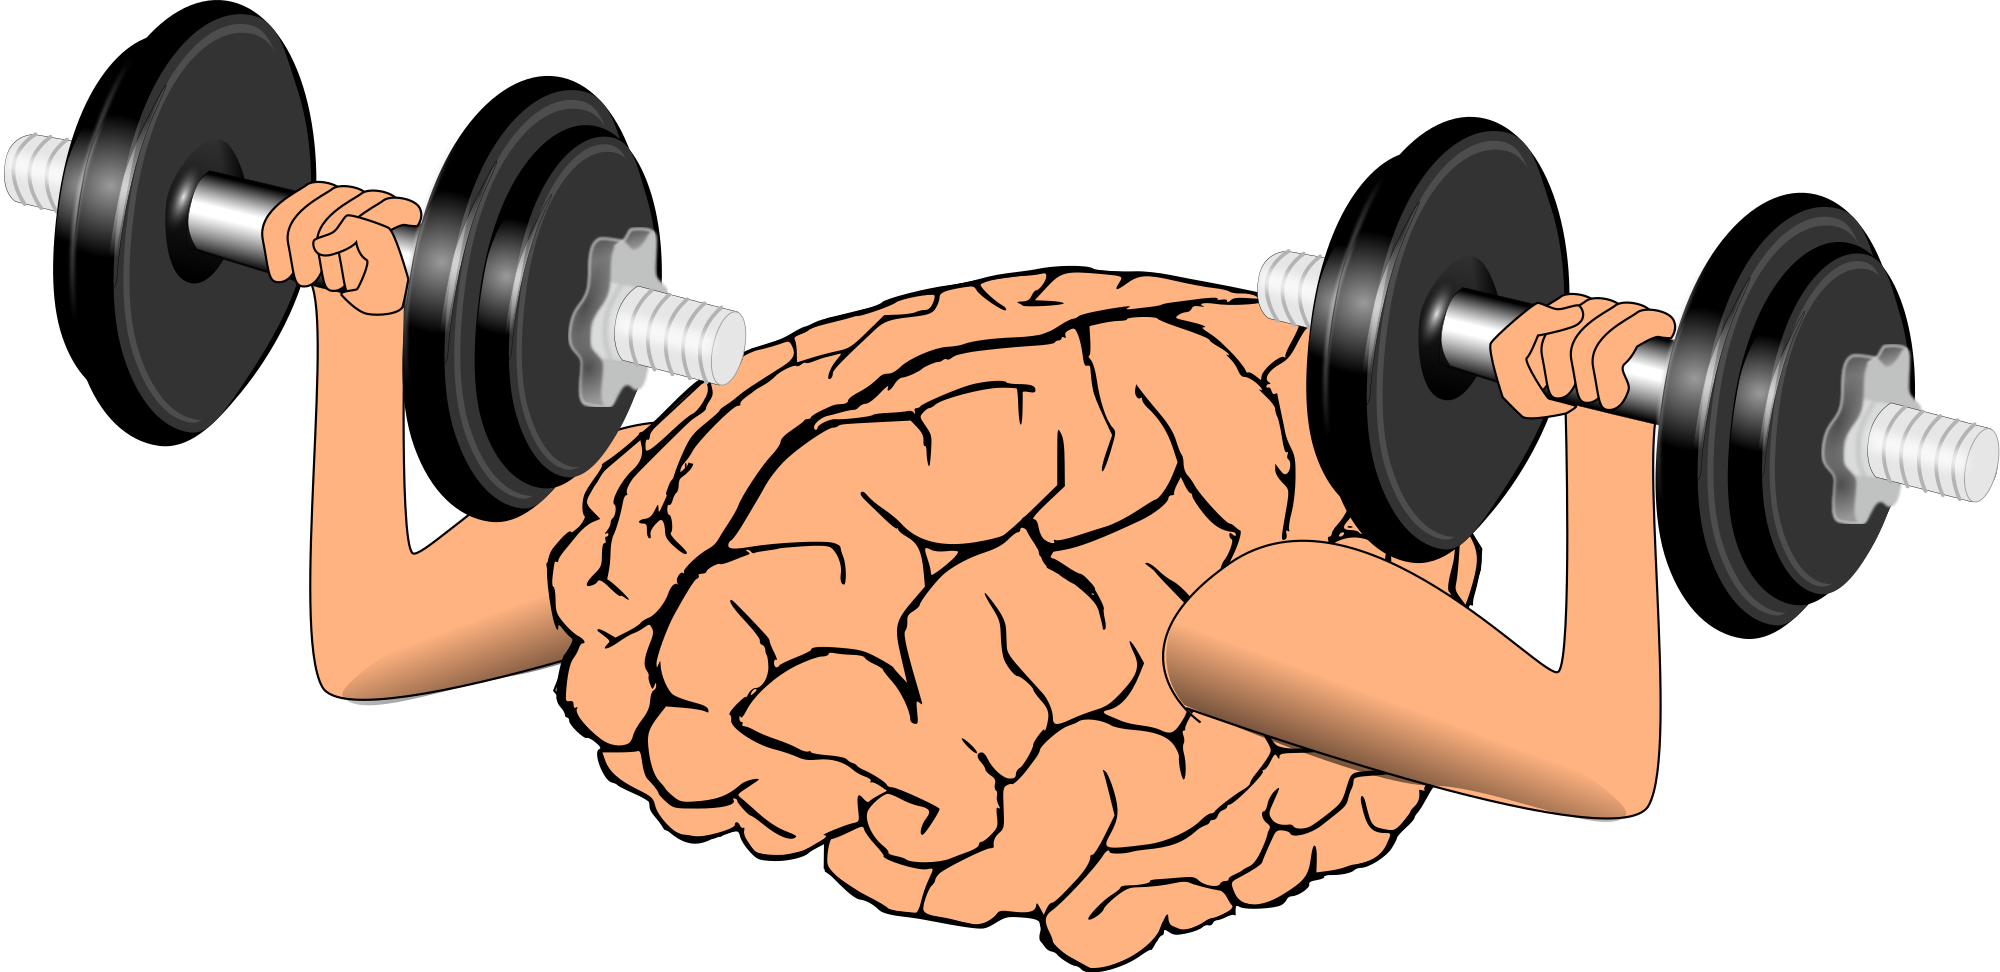 Dumbbell clipart lift weight. File brain svg wikimedia